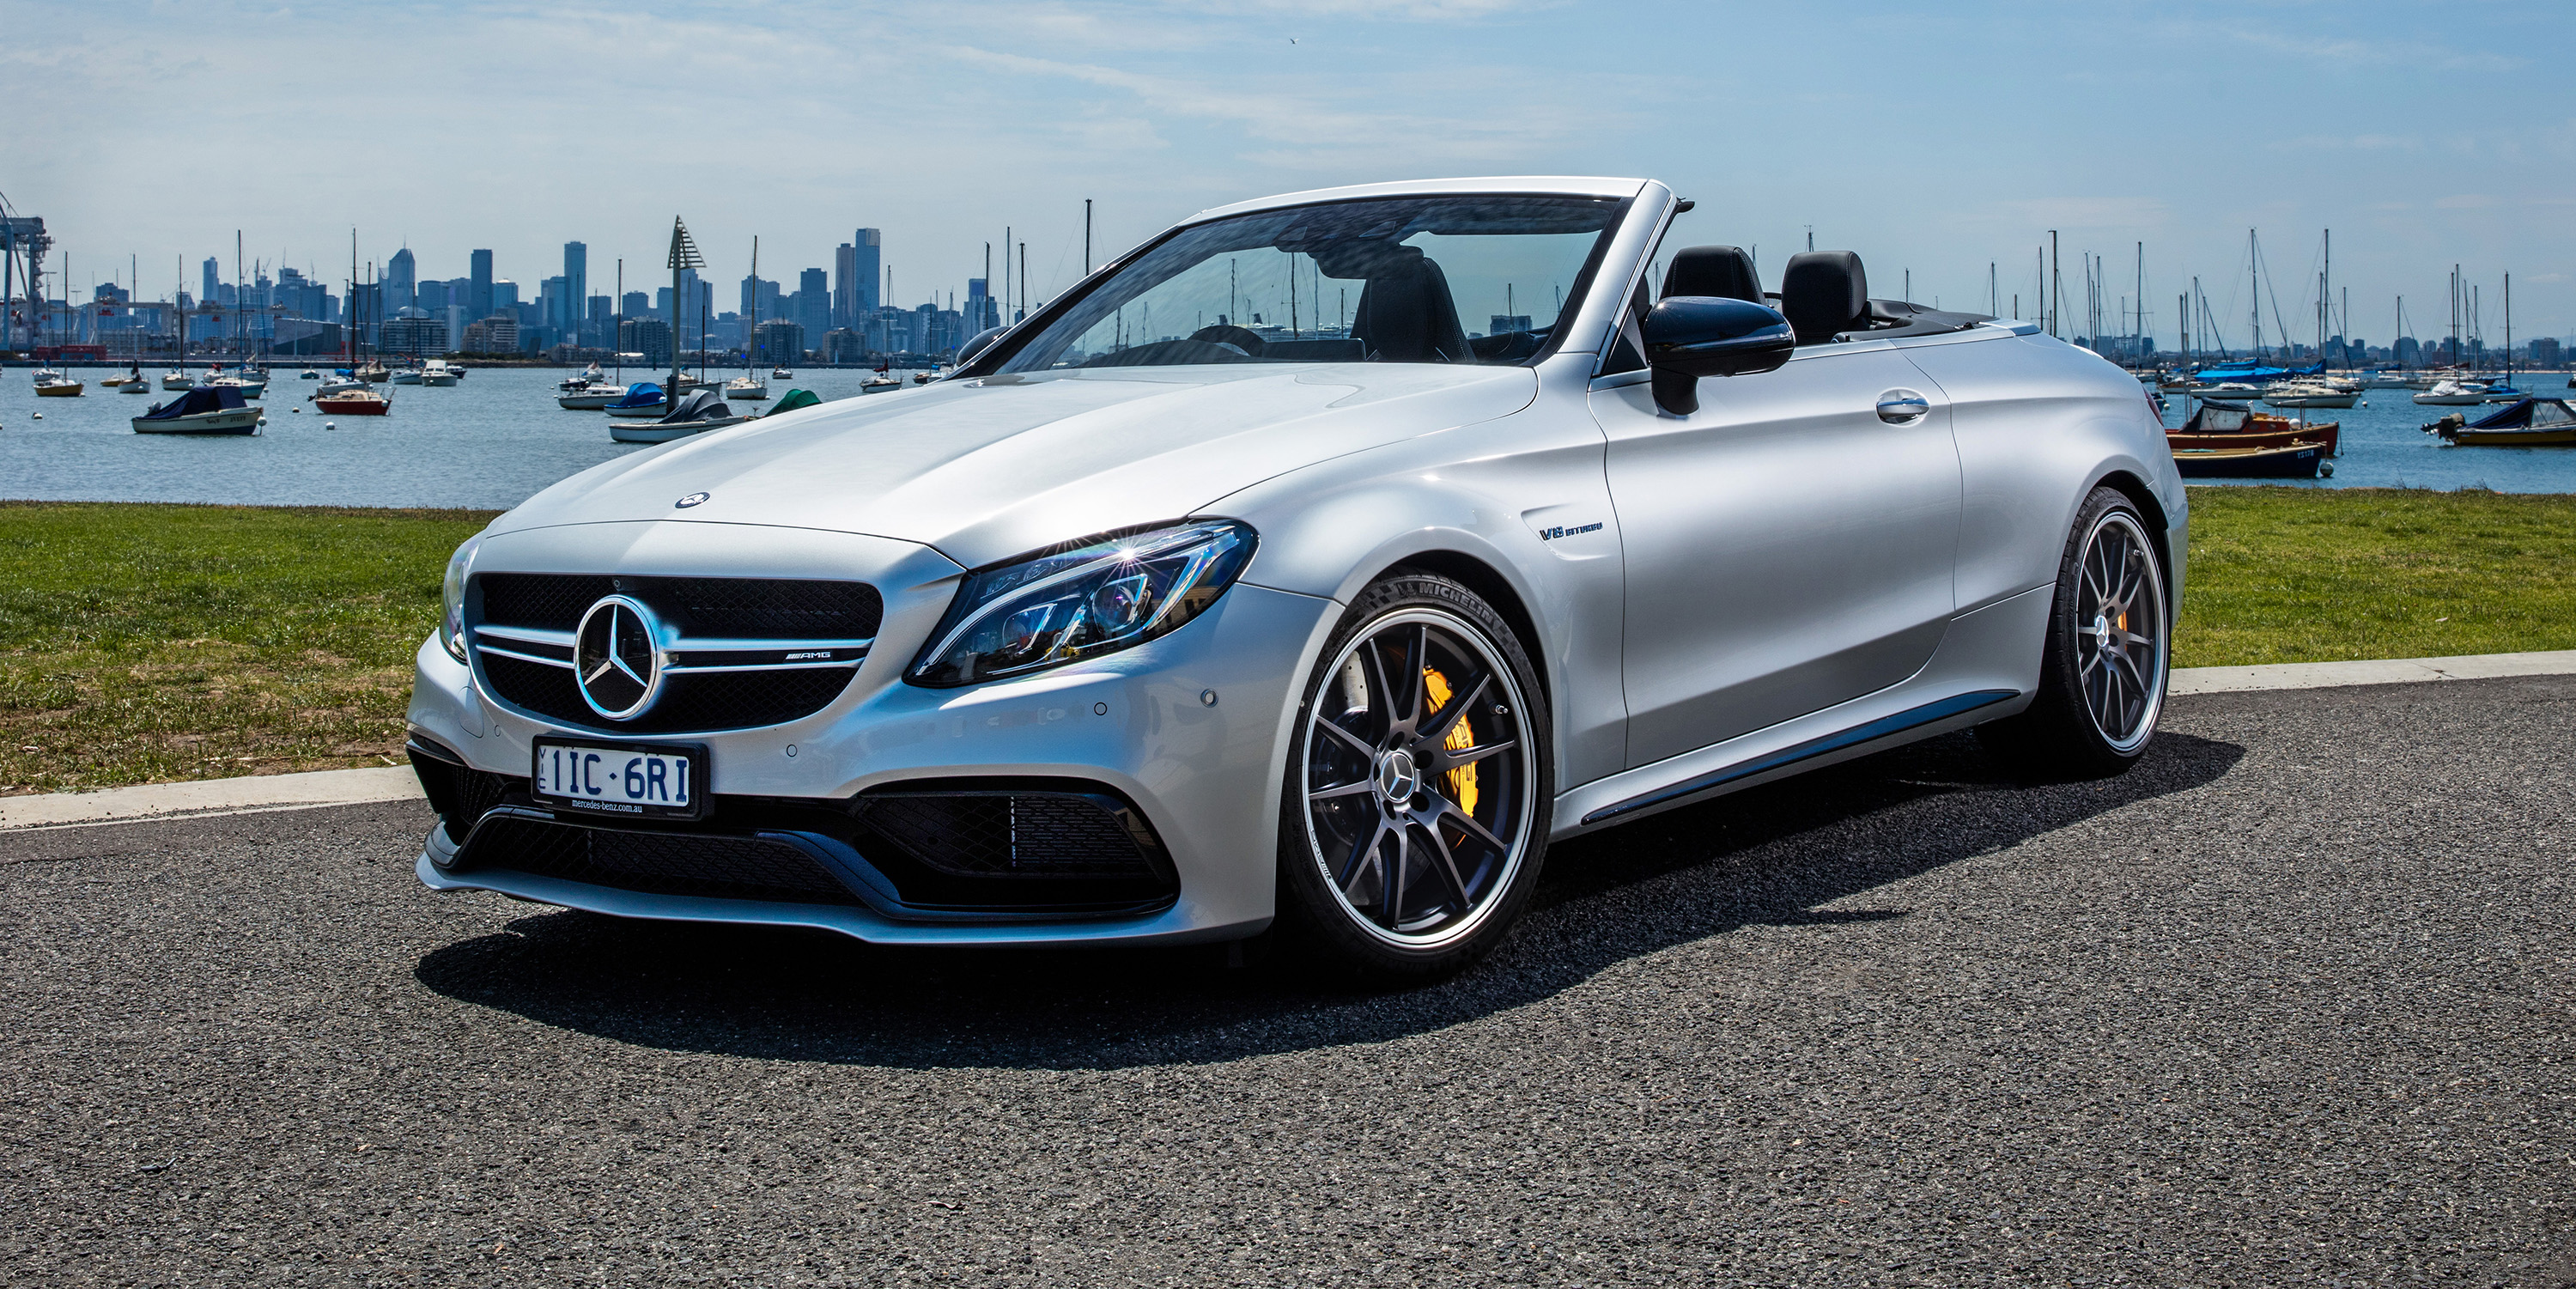 2017 mercedes amg c63 s cabriolet review photos caradvice for Mercedes benz c63 2017